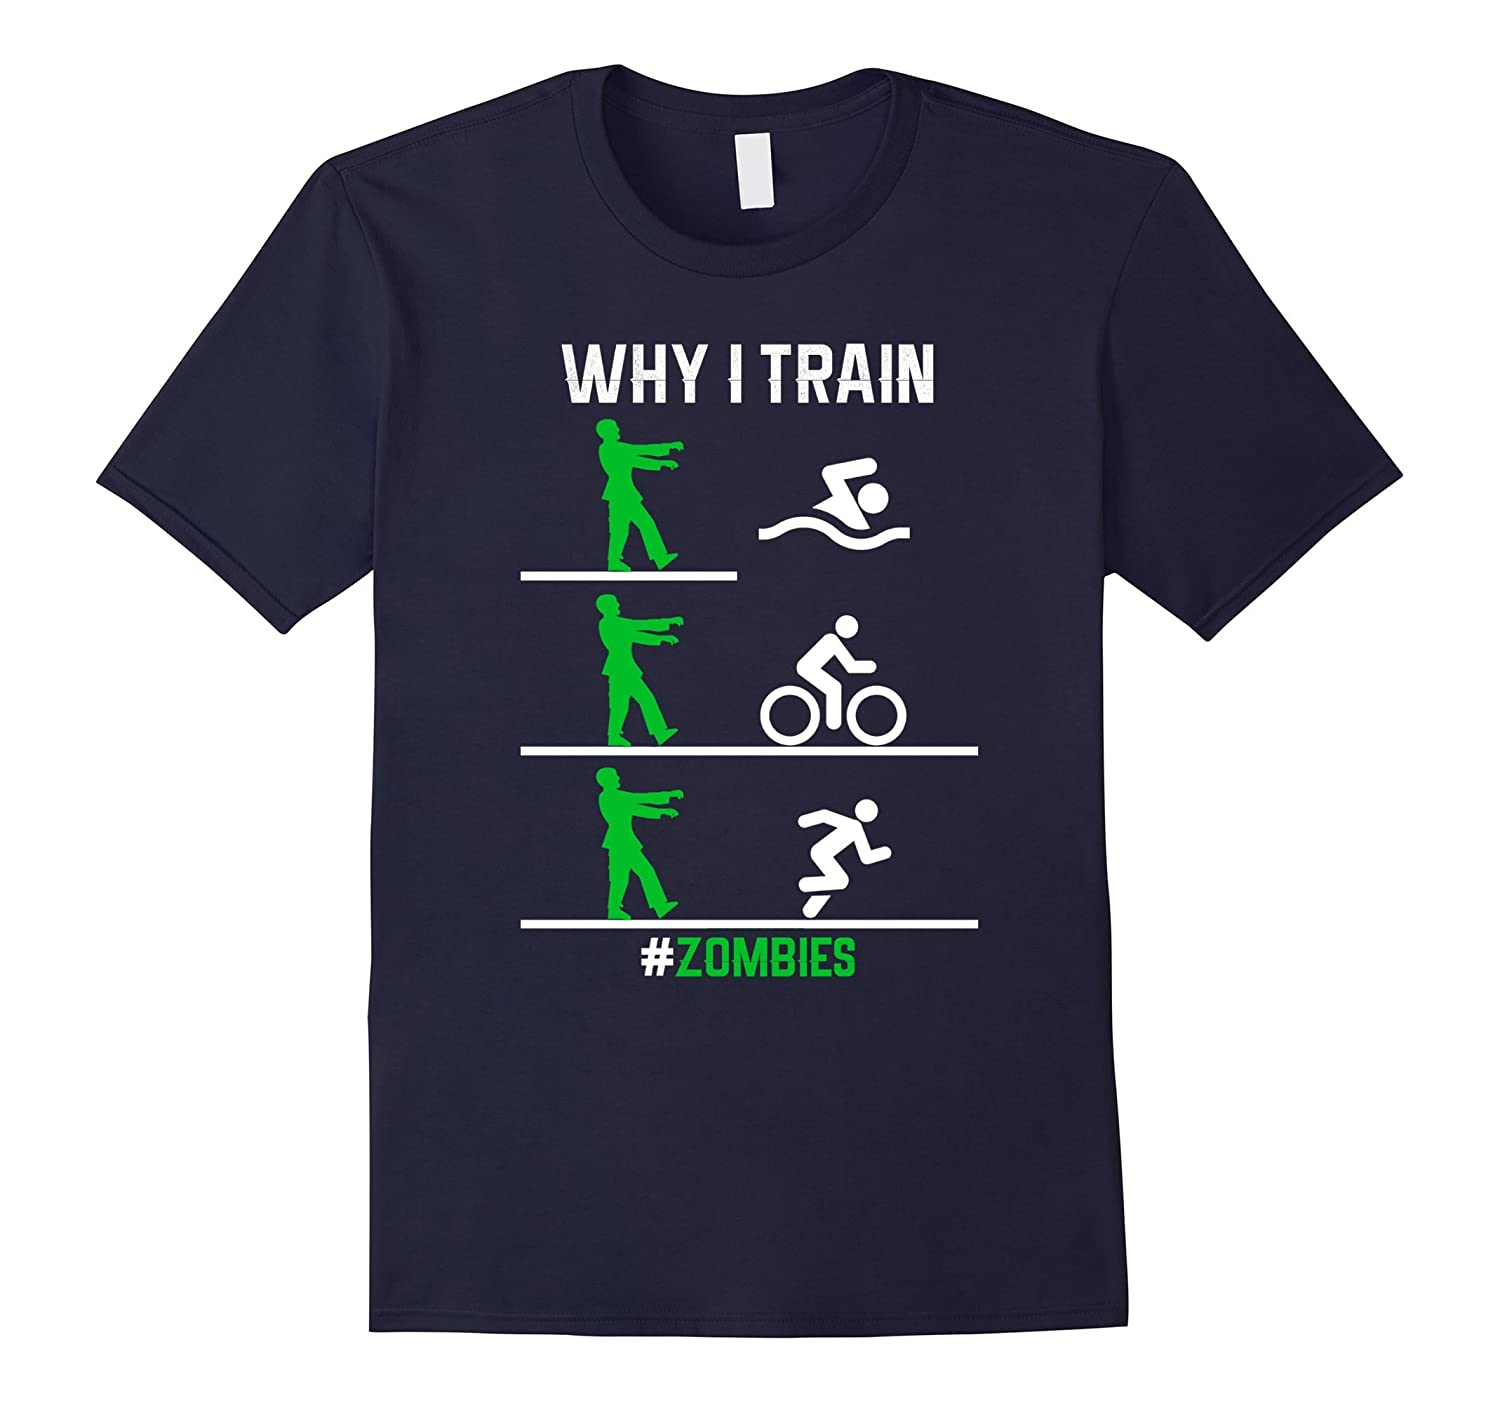 Funny Zombies Chasing Triathletes T-shirt-BN